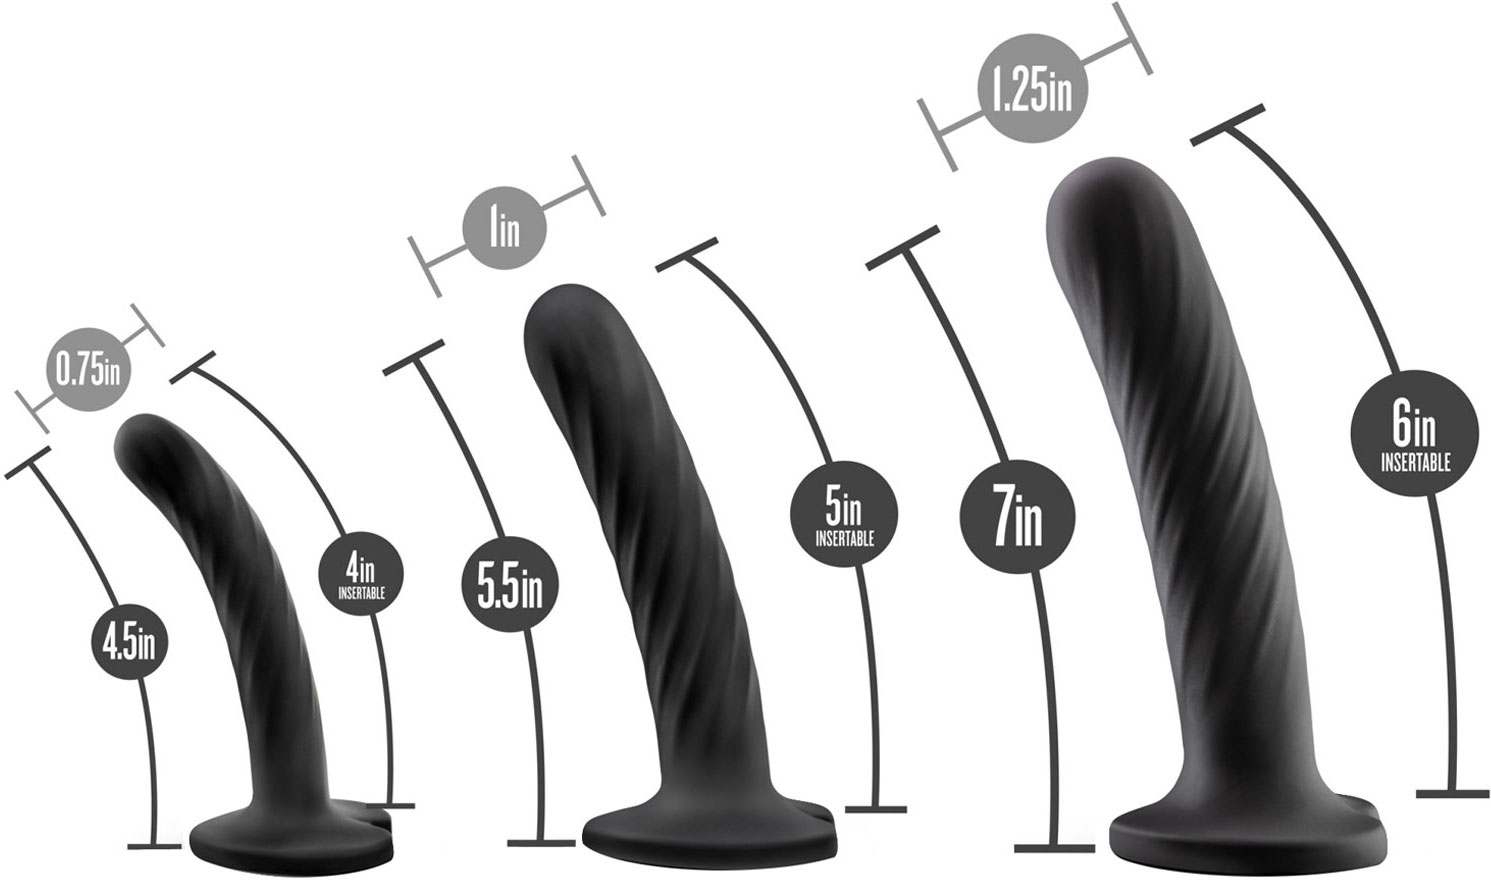 Temptasia Twist Kit - Set of Three Dildos - Measurement